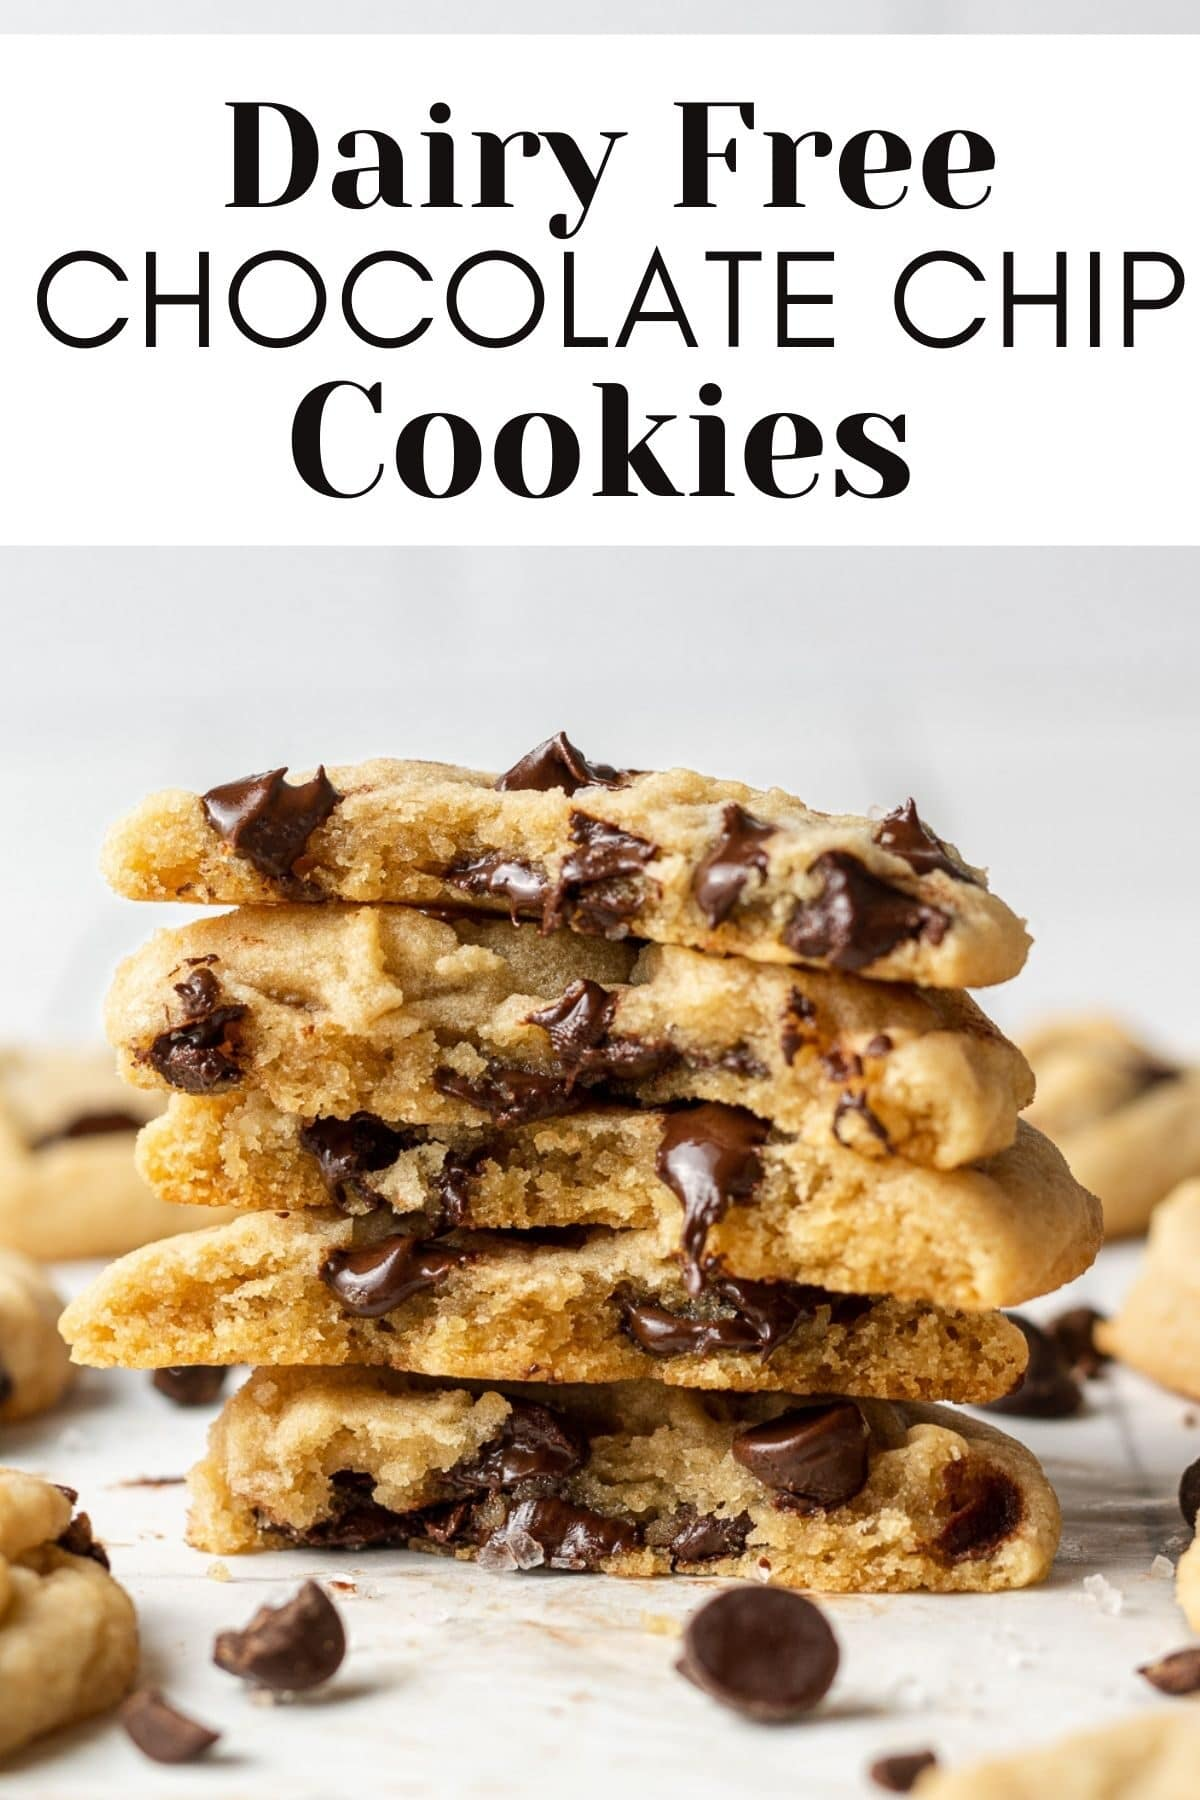 dairy free chocolate chip cookies stacked on each other with text overlay for pinterest